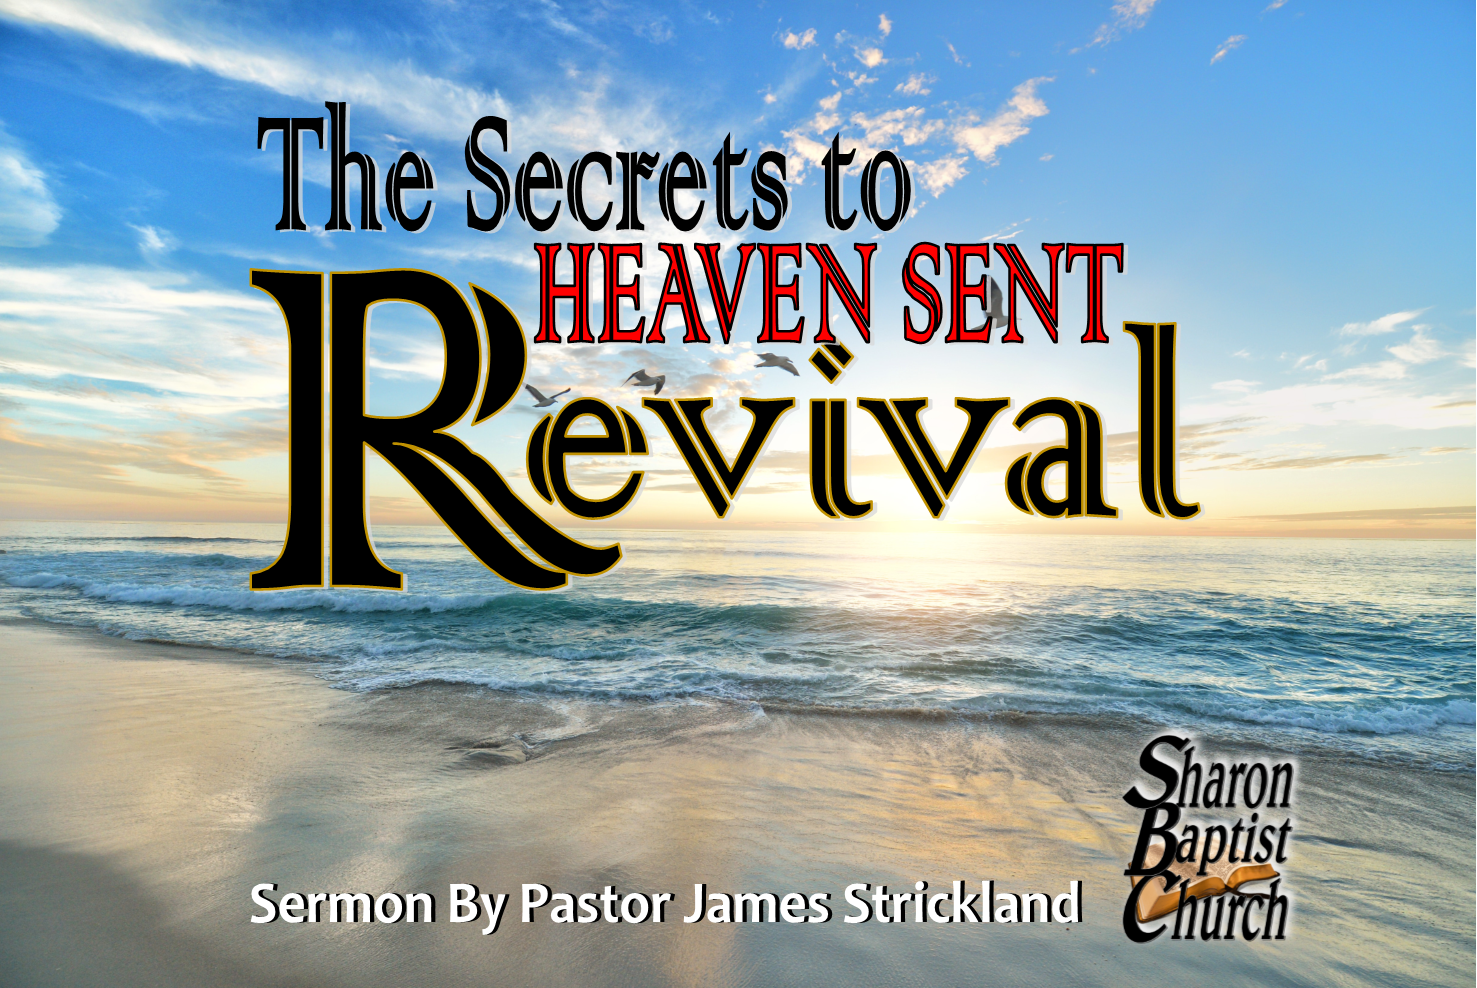 The Secrets to Heaven Sent Revival SERMON by James Strickland